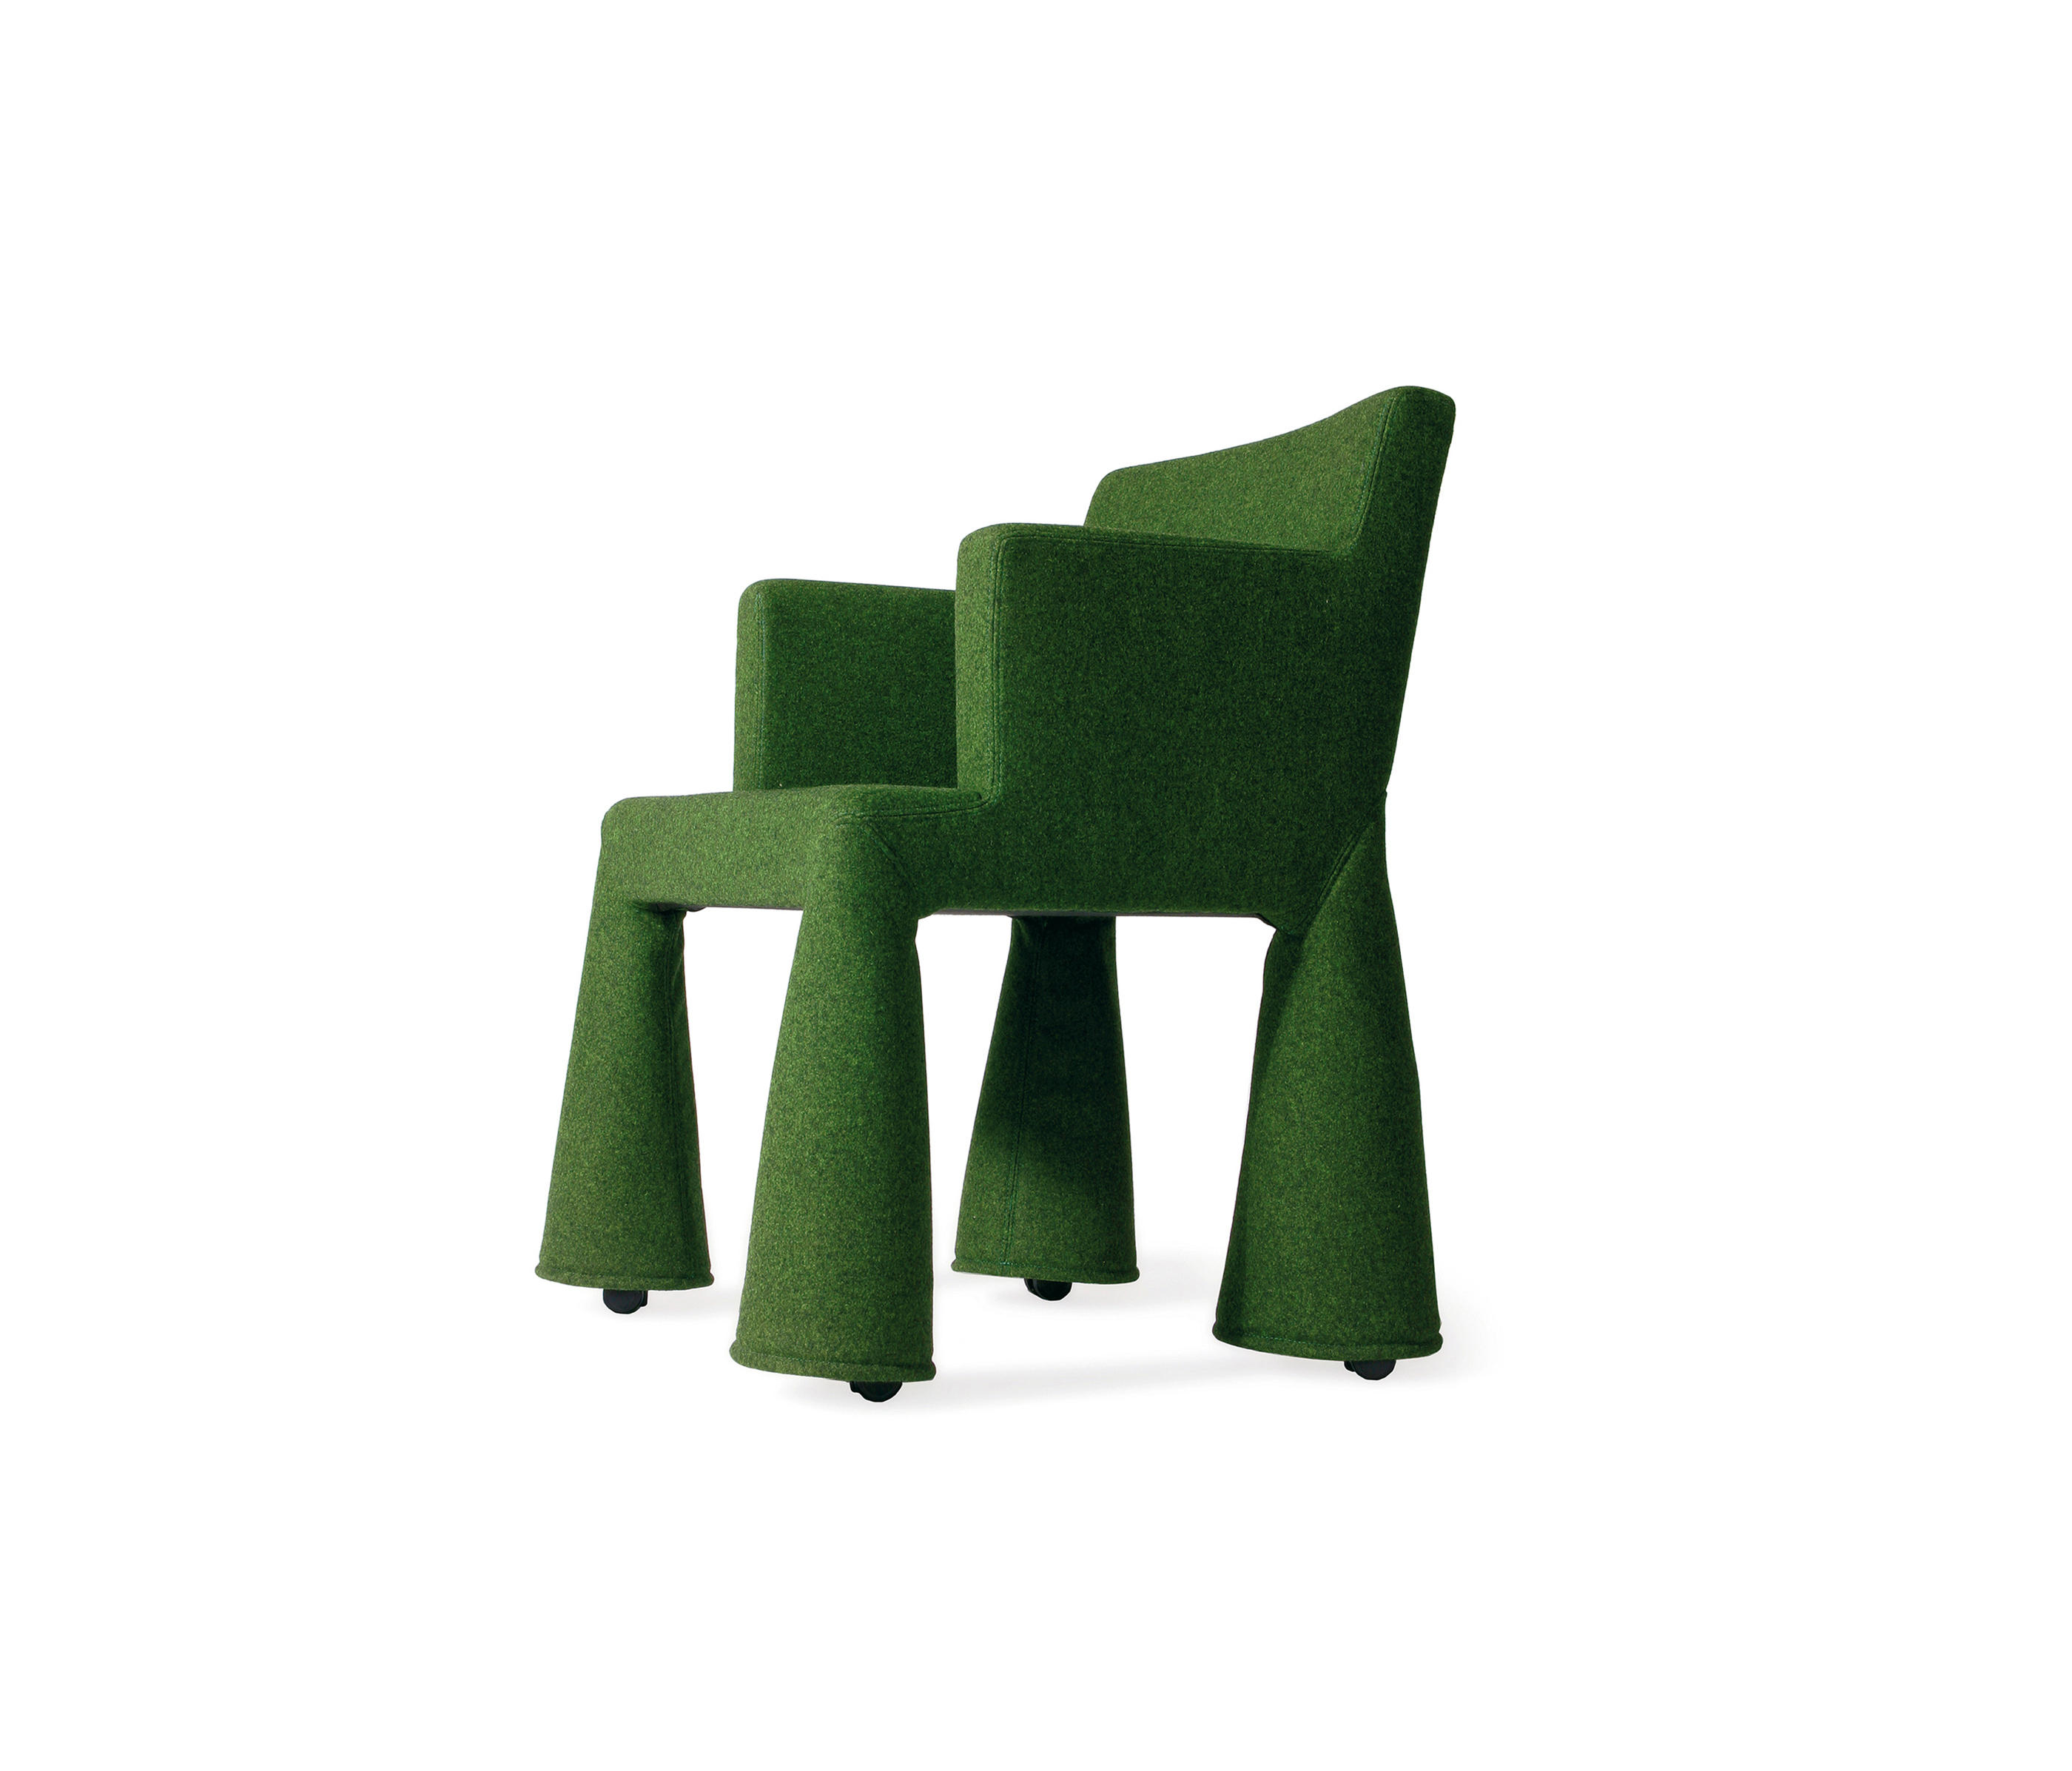 v i p chair chairs from moooi architonic. Black Bedroom Furniture Sets. Home Design Ideas